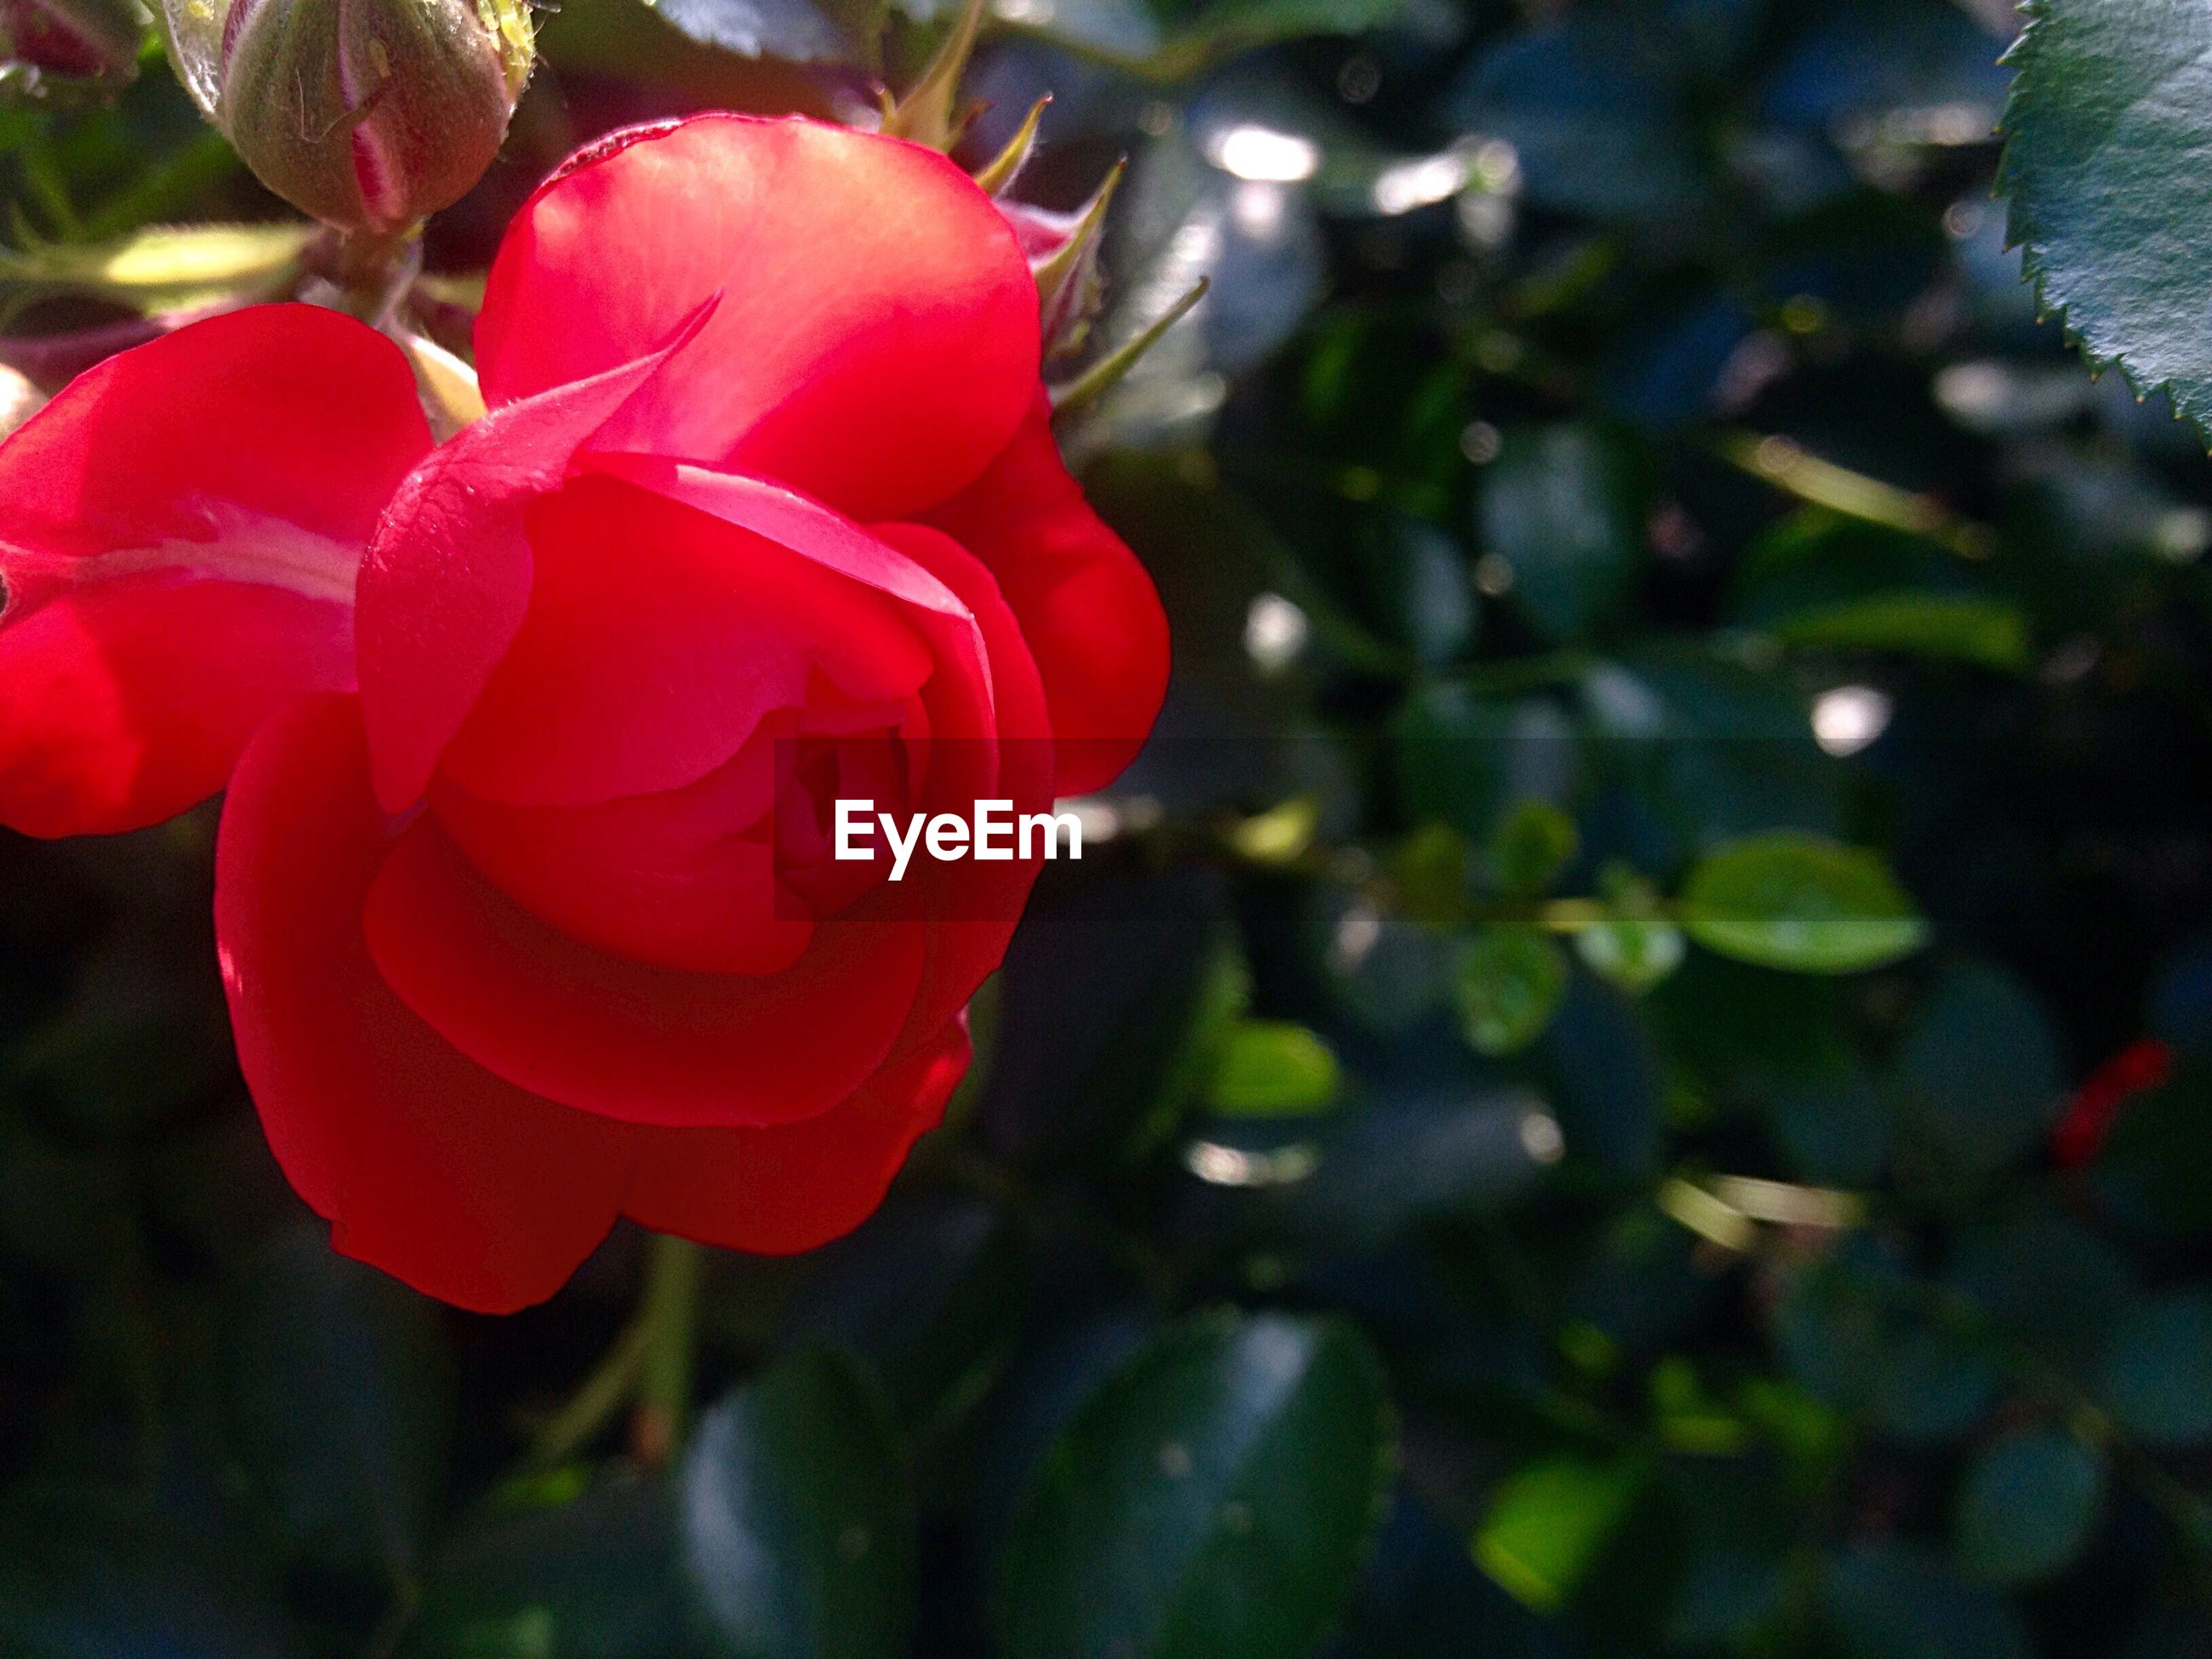 Close-up of red rose against blurred leaves